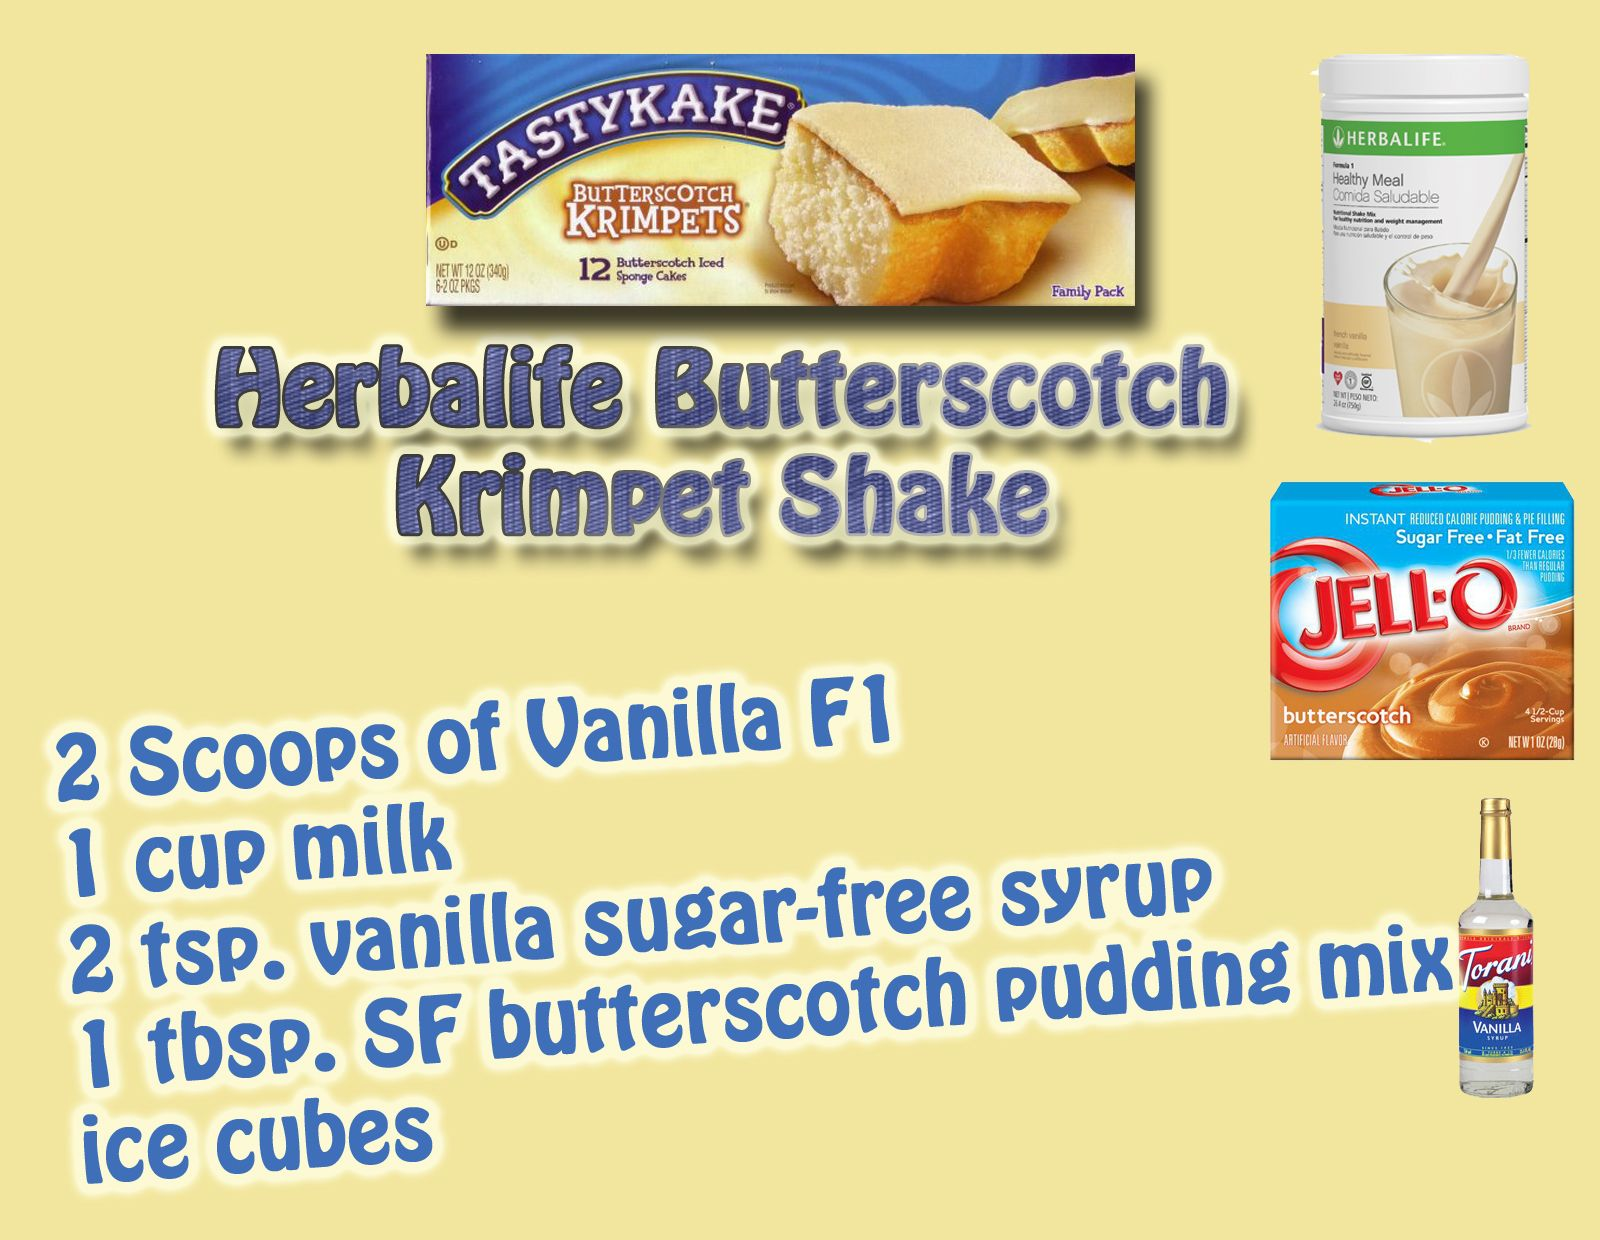 Herbalife Butterscotch Krimpet Shake with Vanilla F1   Herbalife and ...